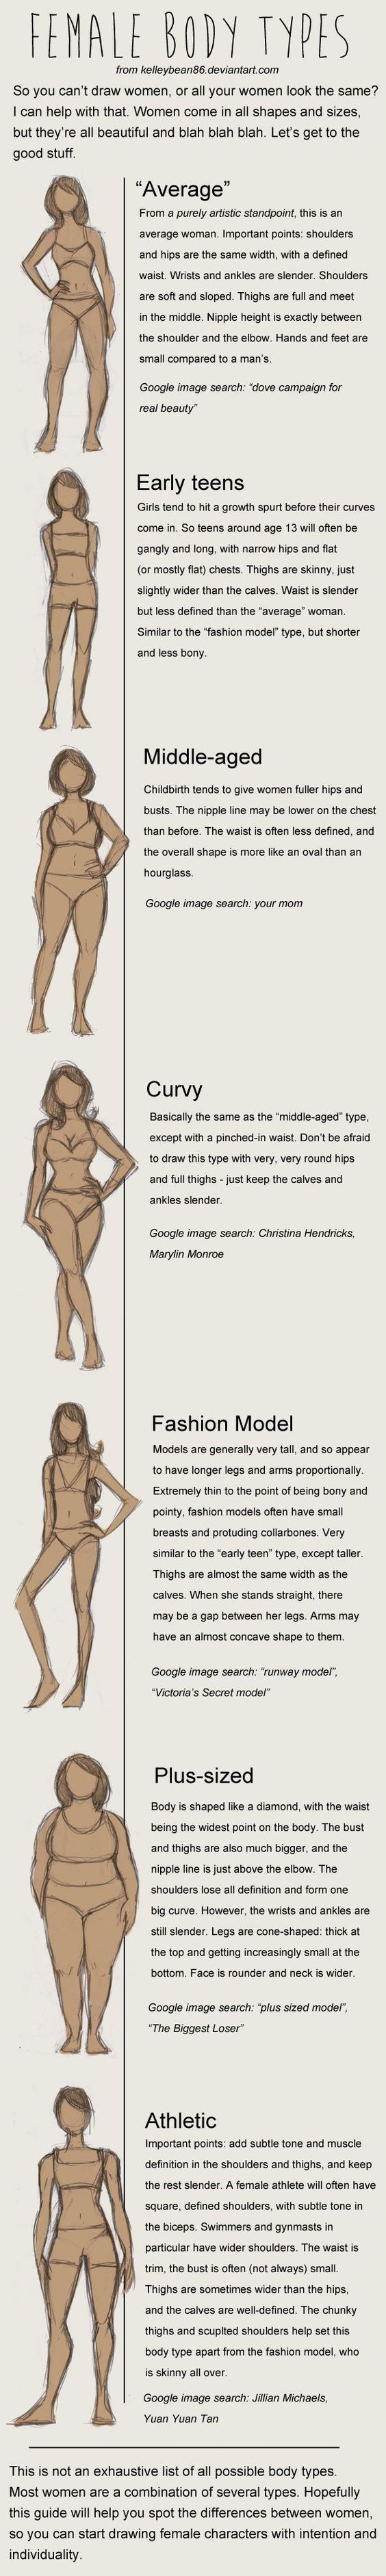 How To Draw Different Female Body Types - Bored Art